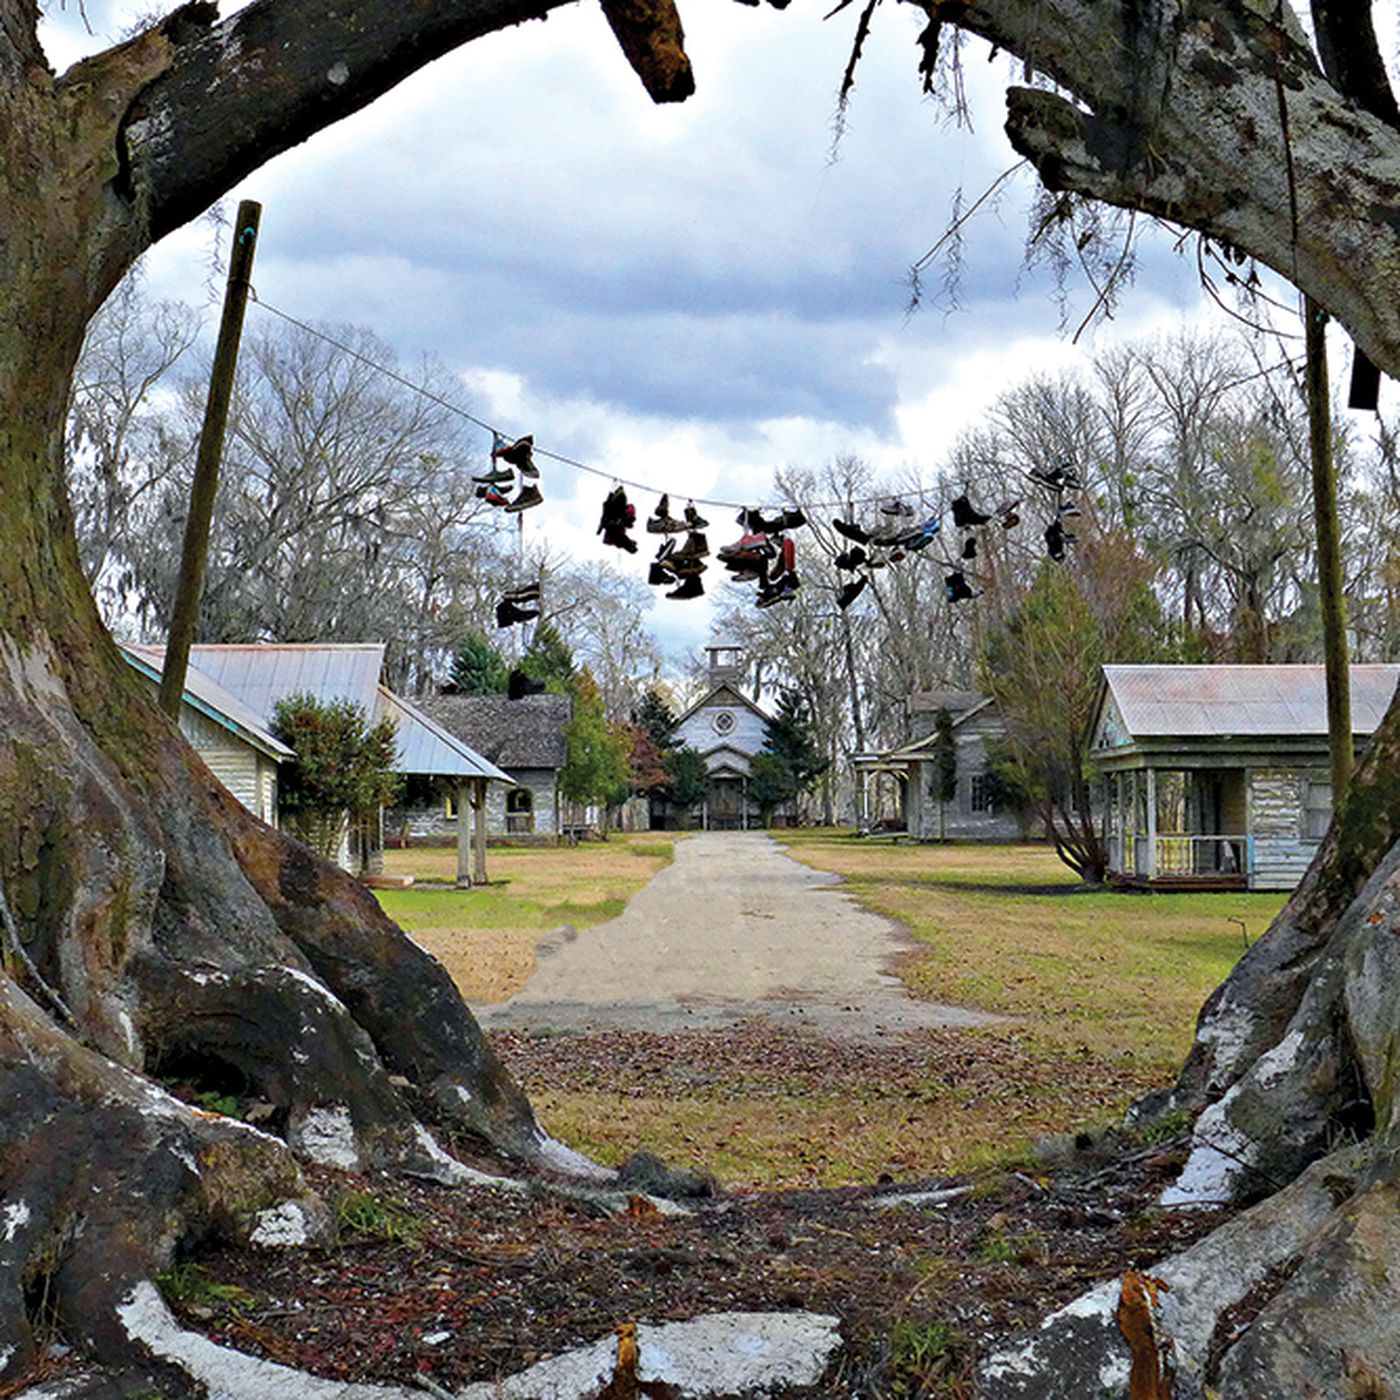 45 Things To Love About Alabama The Town Of Spectre From Big